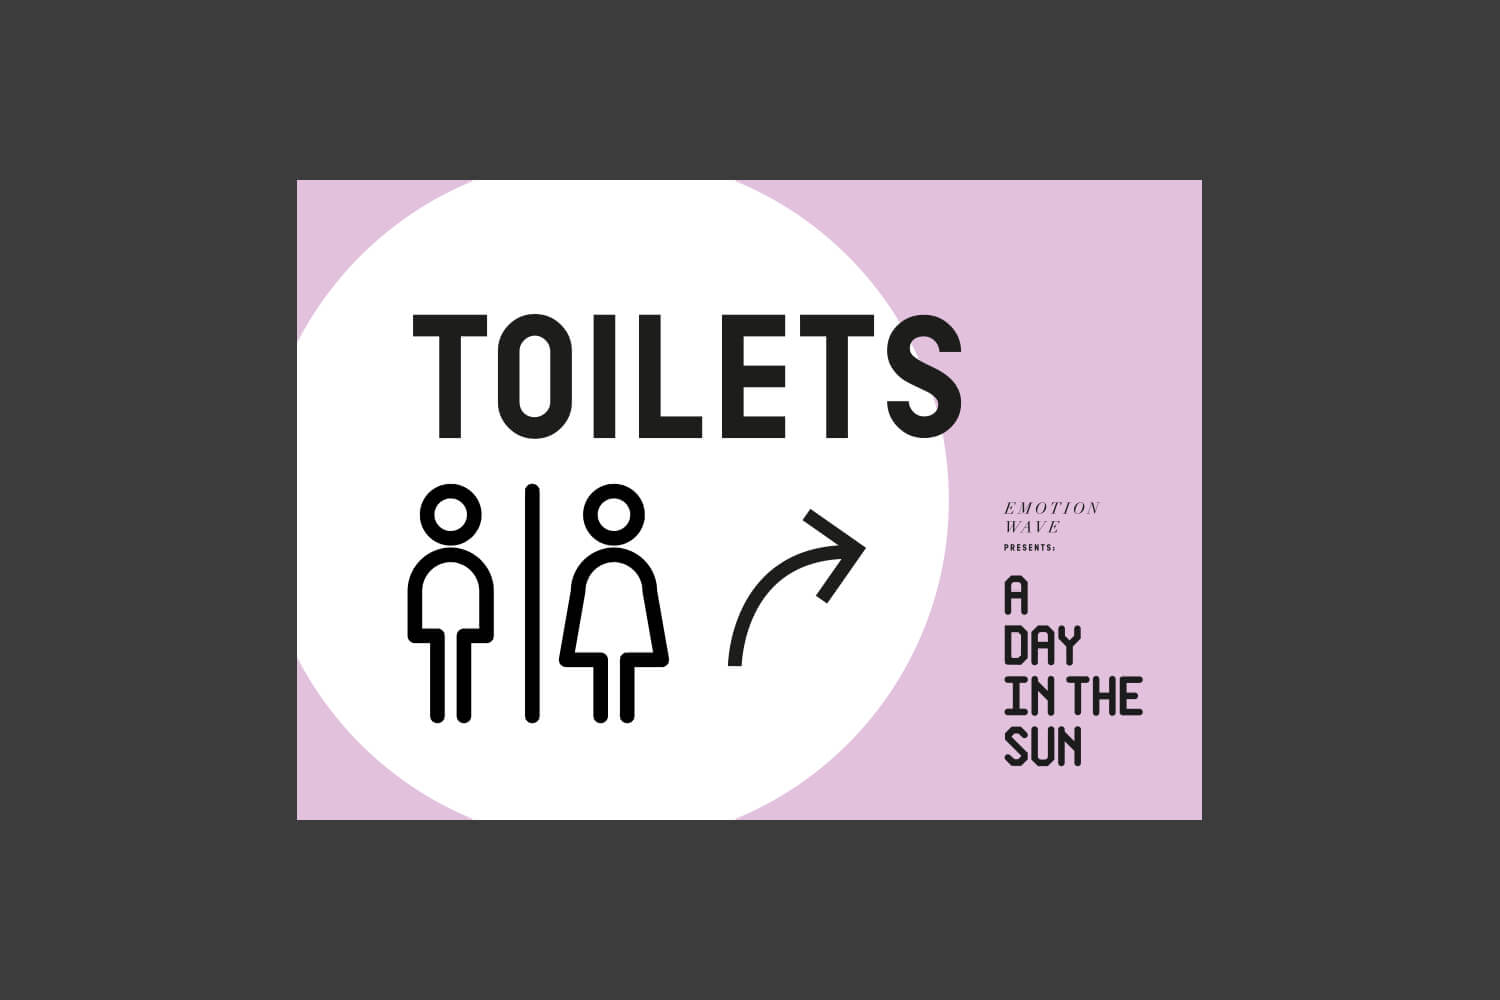 a-day-in-the-sun-sign-toilets